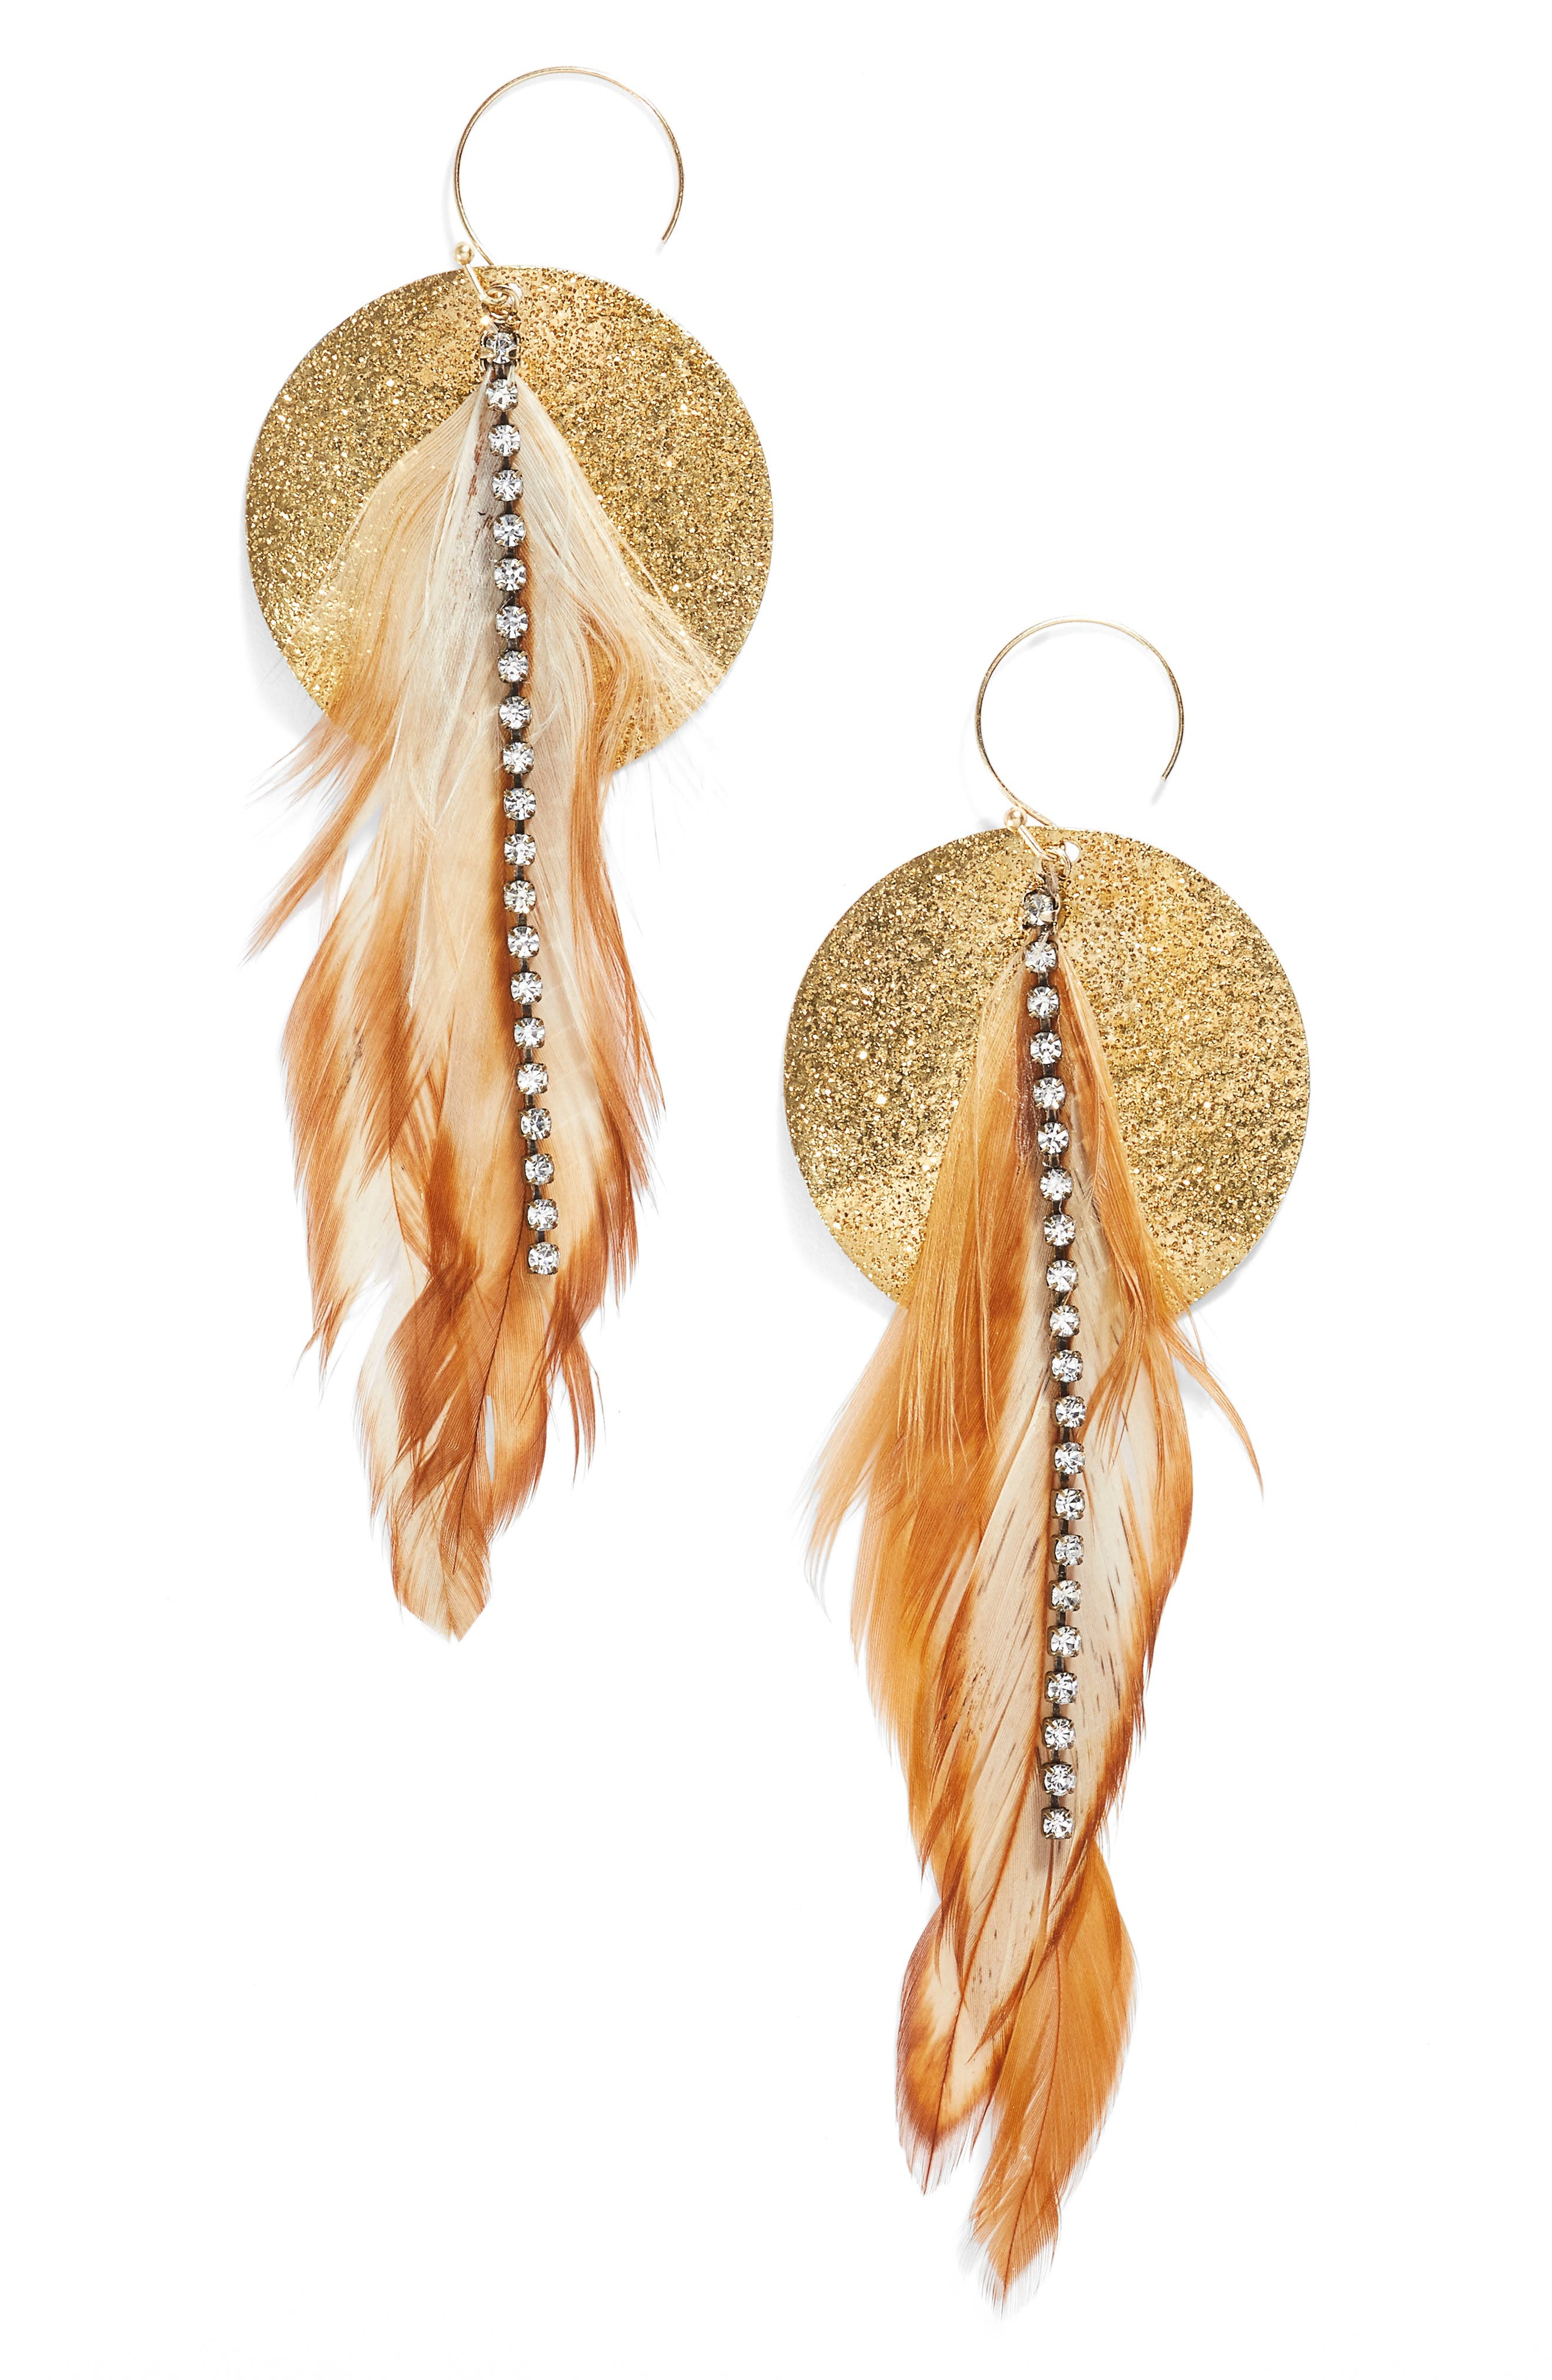 Feather Disk Drop Earrings,                             Main thumbnail 1, color,                             Tan